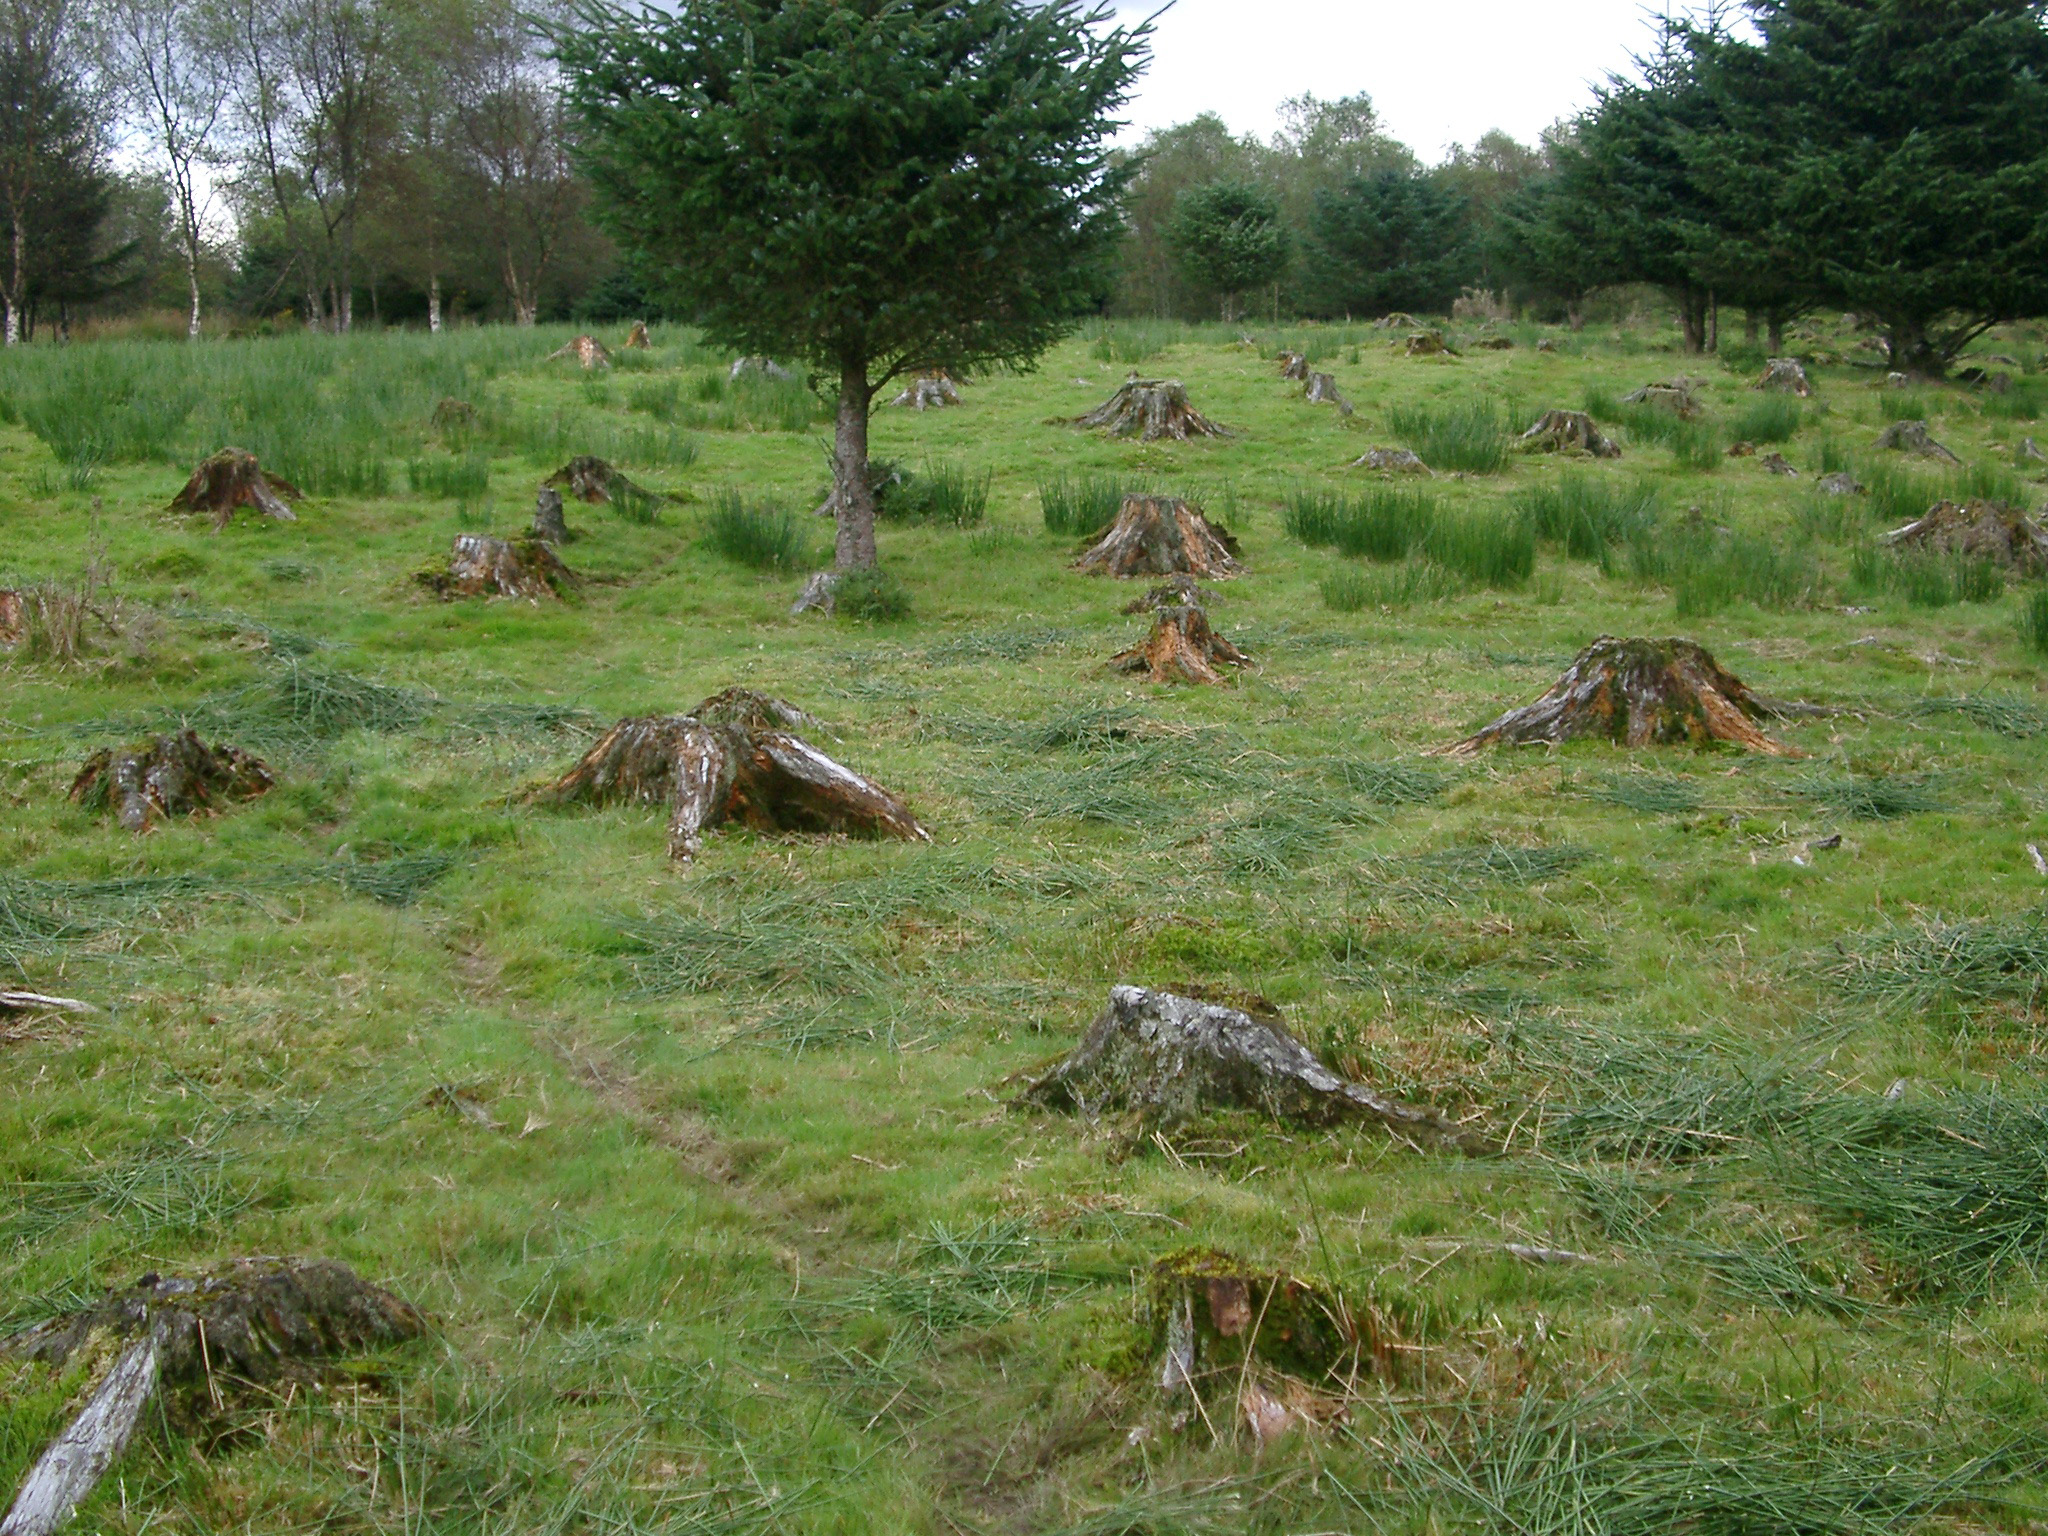 Forestry aftermath showing a green field filled with the remnants of cleared and felled tree stumps in an old pine plantation